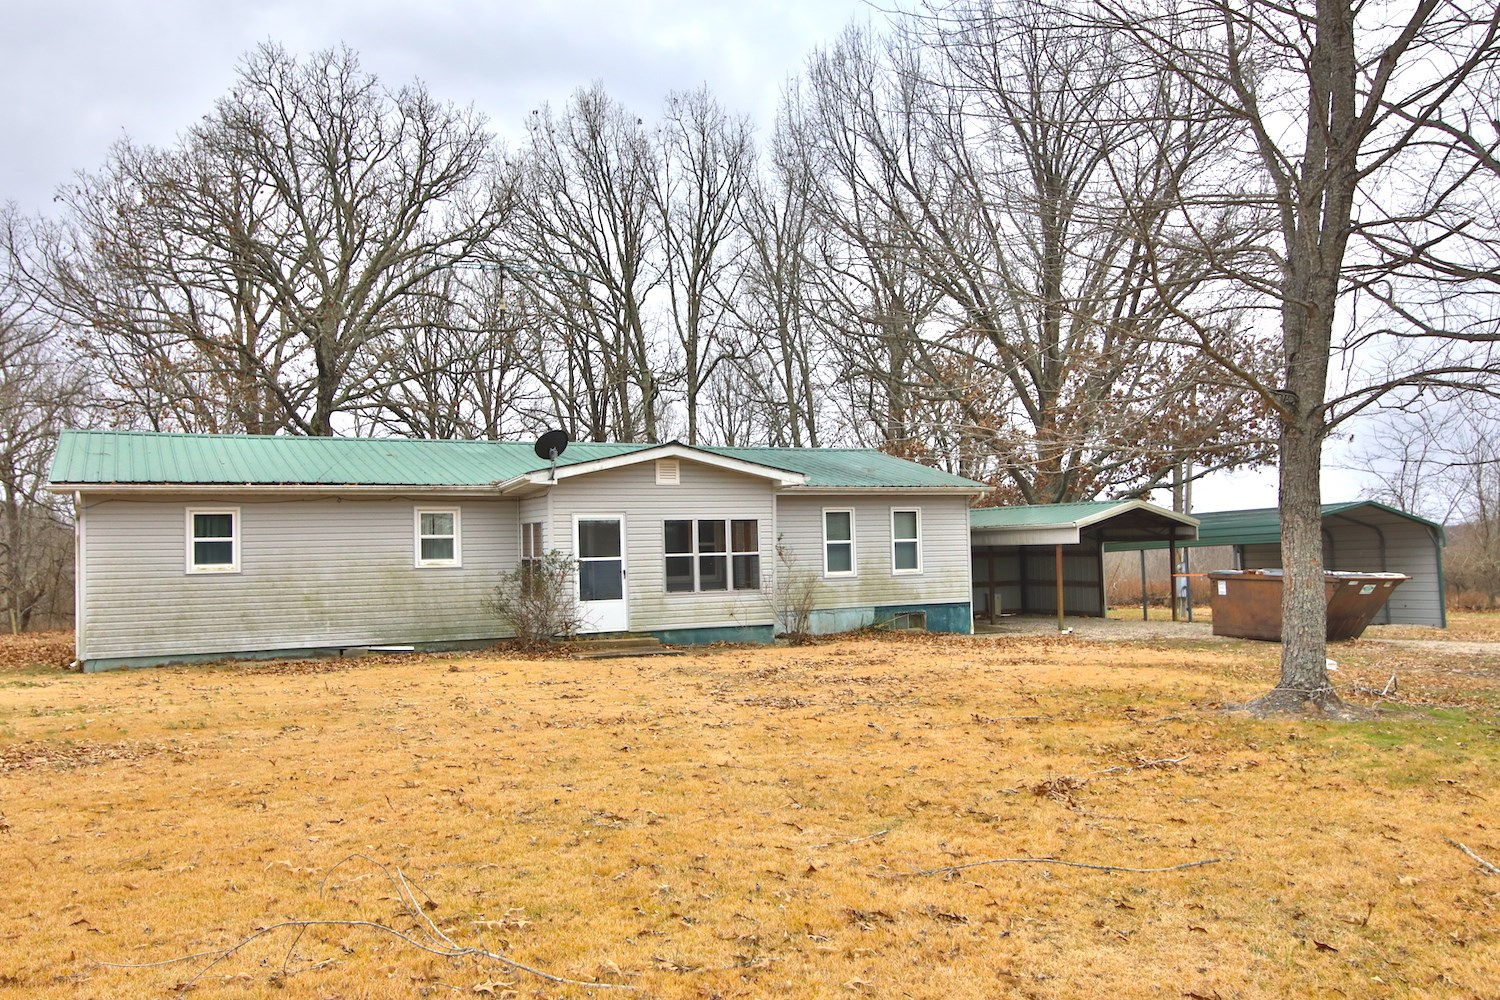 Country Home for Sale on 120 Acres